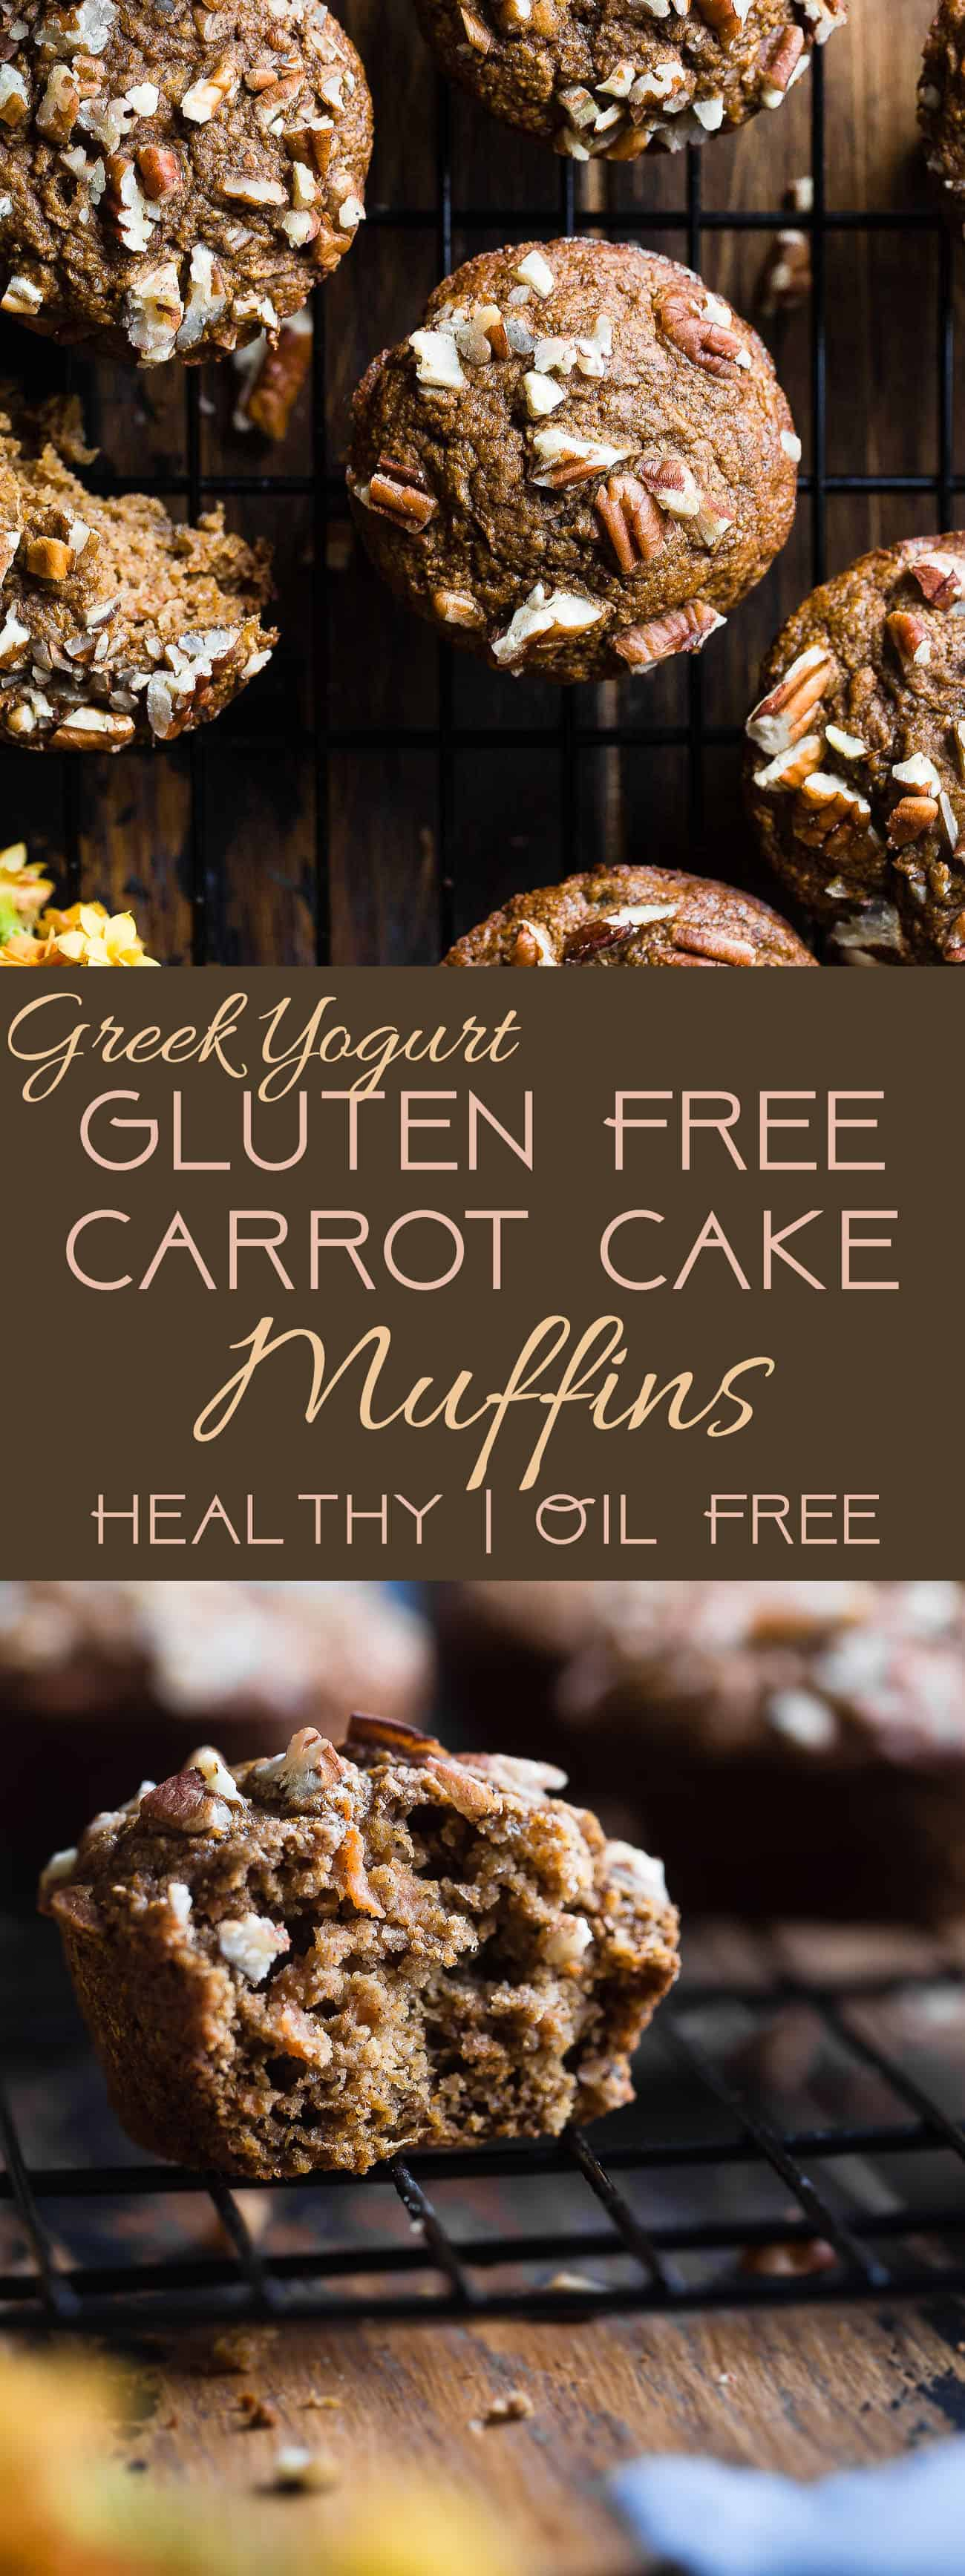 Gluten Free Healthy Carrot Cake Muffins - These easy carrot muffins arequick, simple and made from pantry-essential ingredients! Perfect for a quick breakfast or snack and use Greek yogurt instead of oil! | #Foodfaithfitness | #Muffins #Glutenfree #Healthy #Carrotcake #Greekyogurt